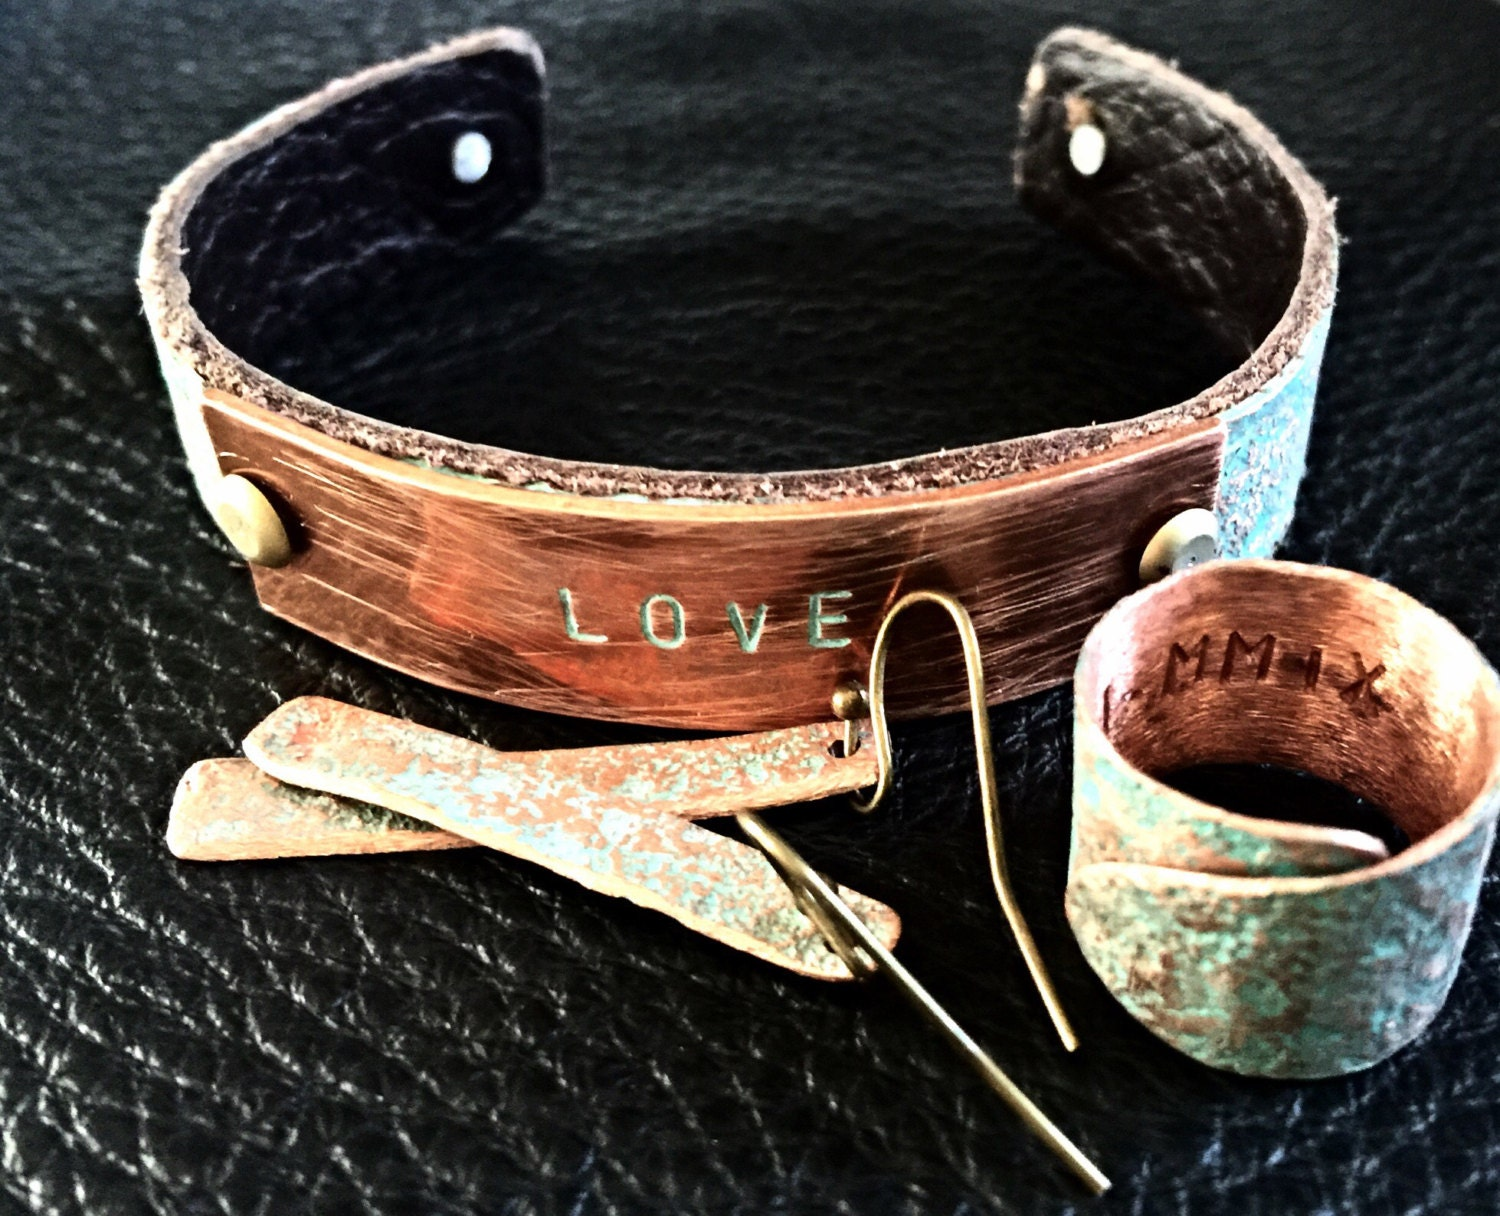 Personalized copper anniversary gift set jewelry